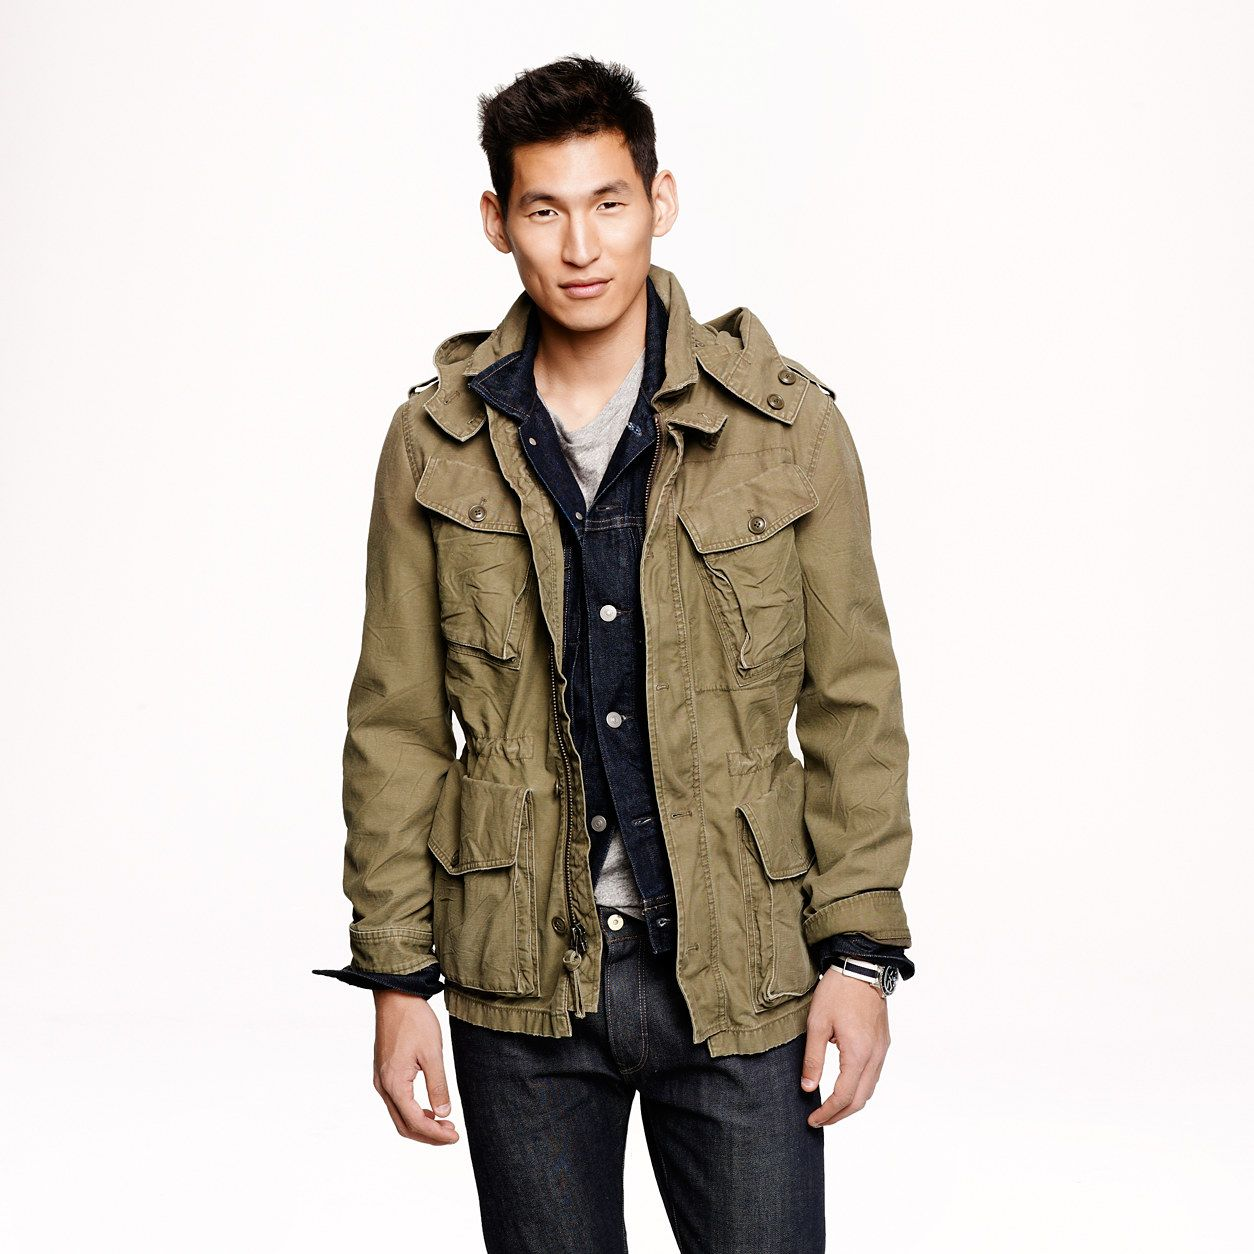 Garrison fatigue jacket - Field Jackets - Men's ...